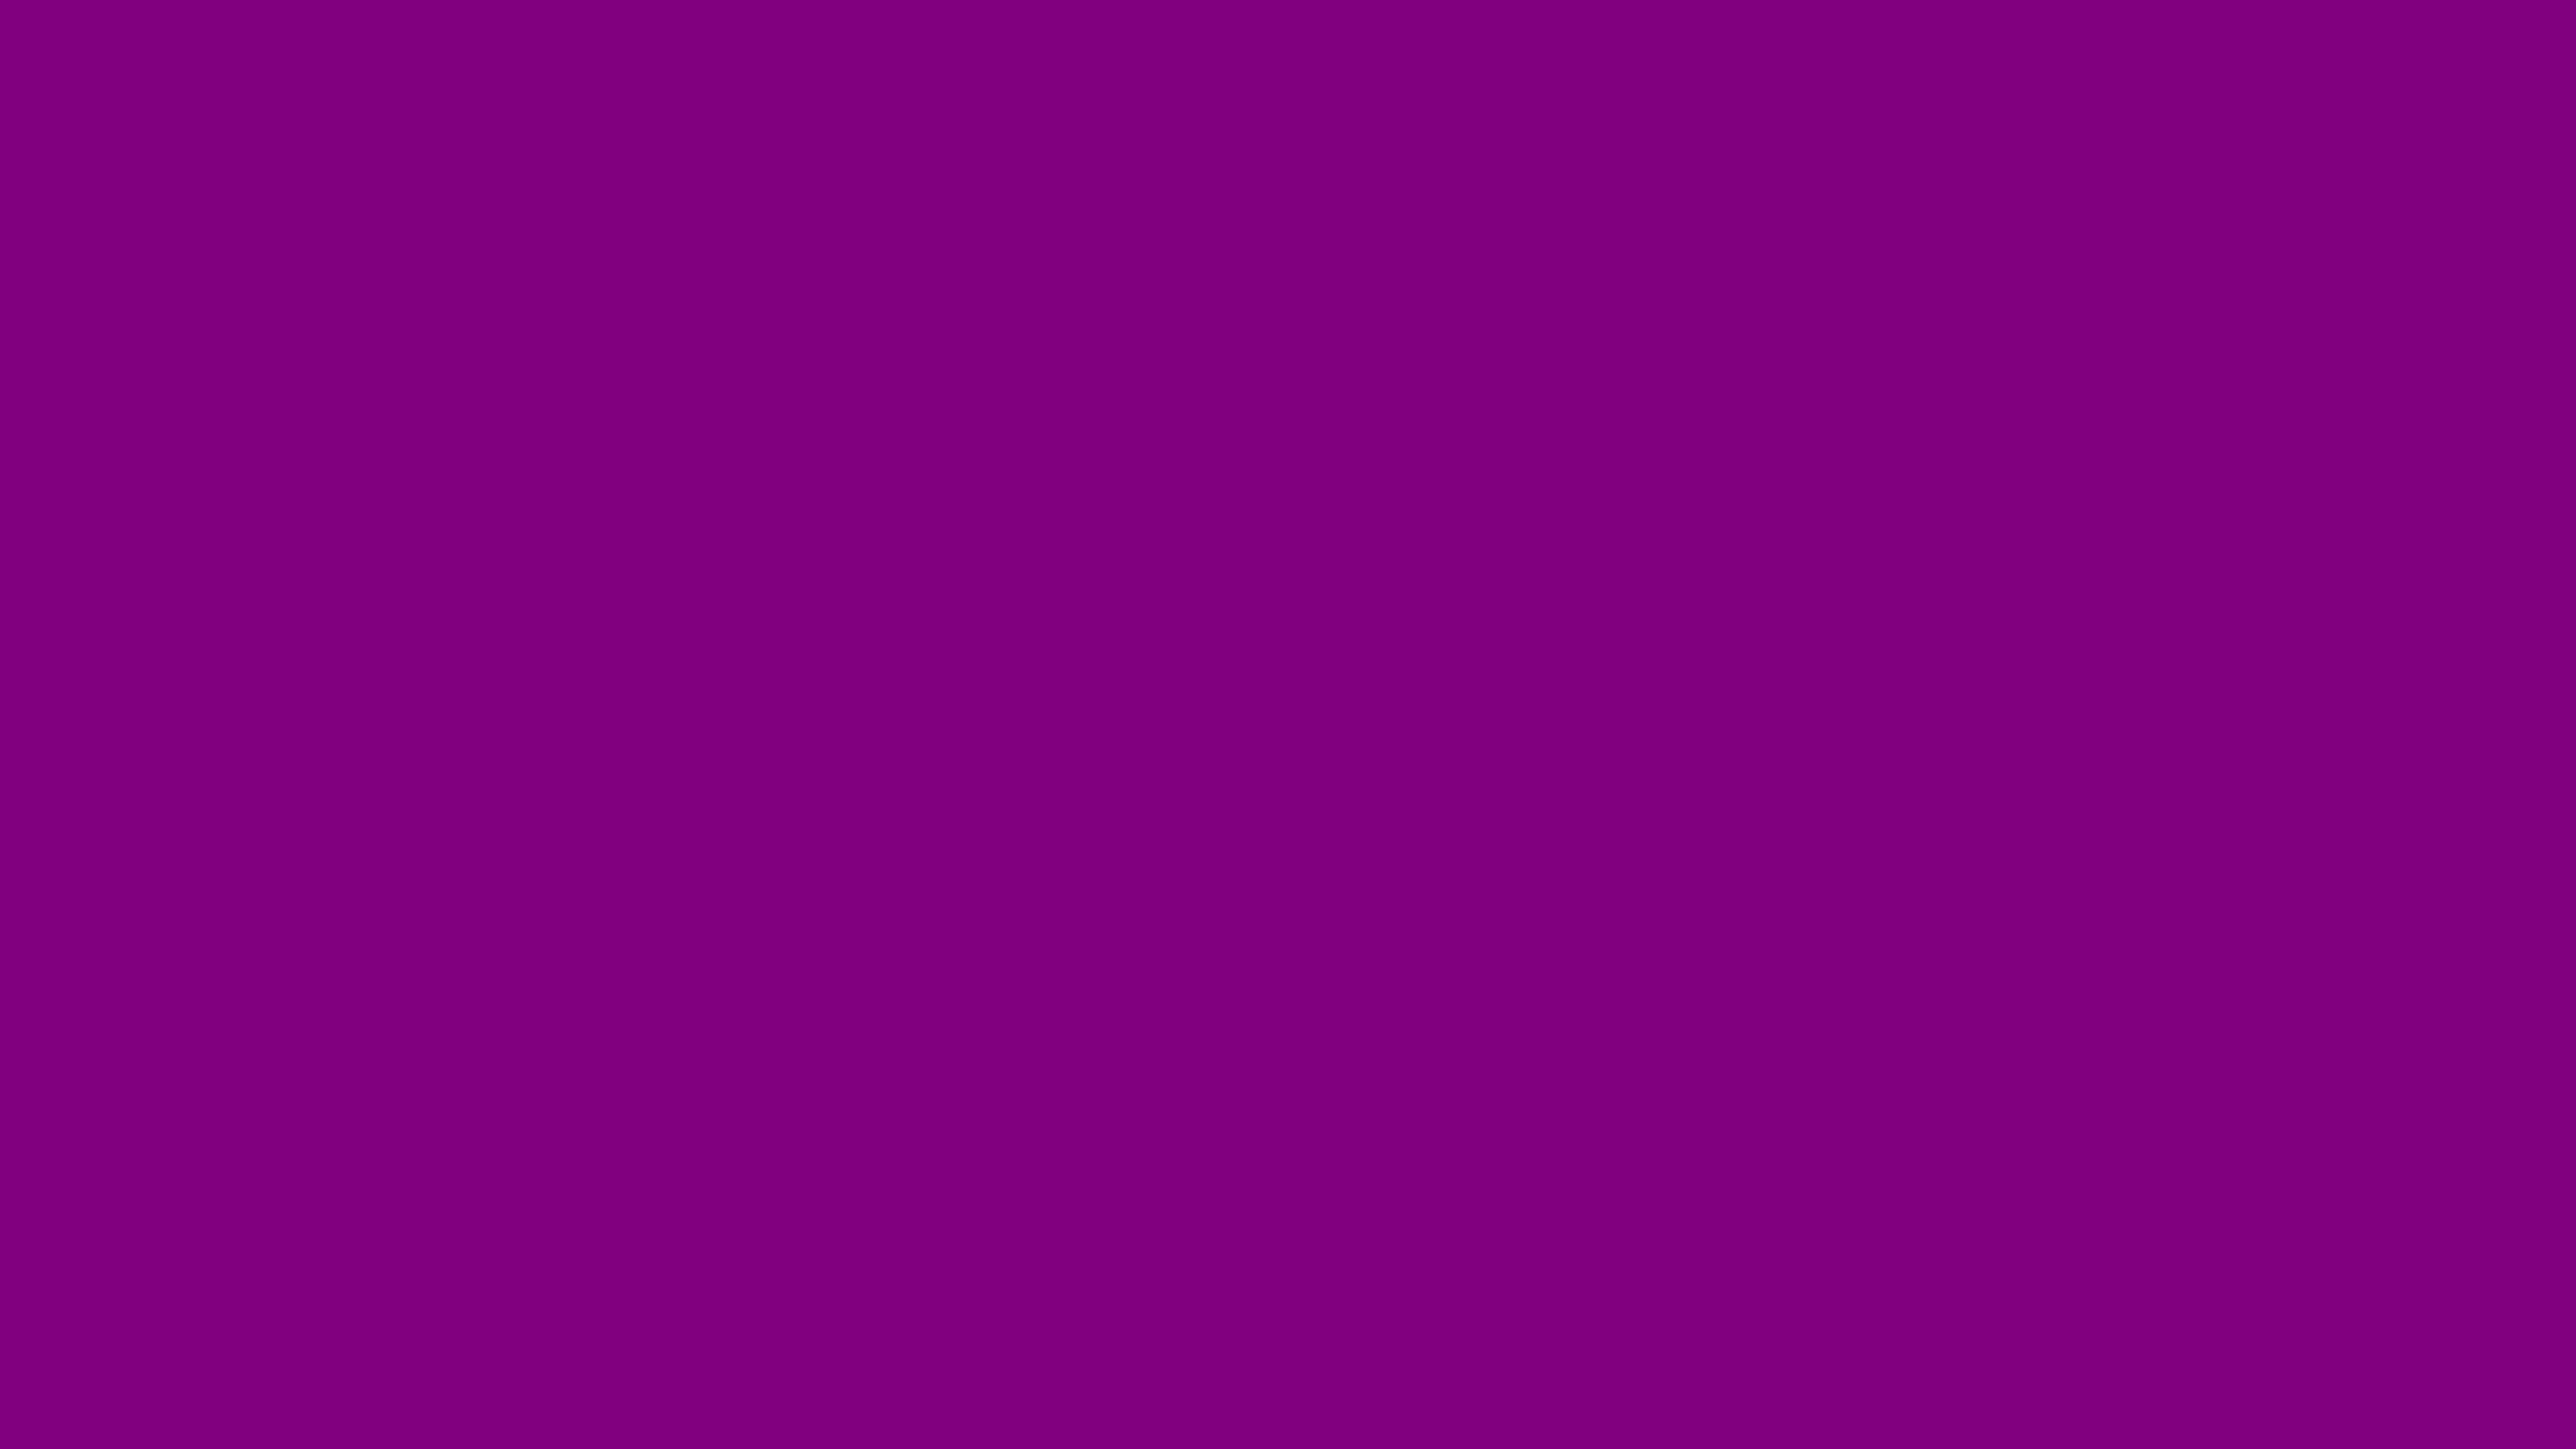 3840x2160 Purple Web Solid Color Background